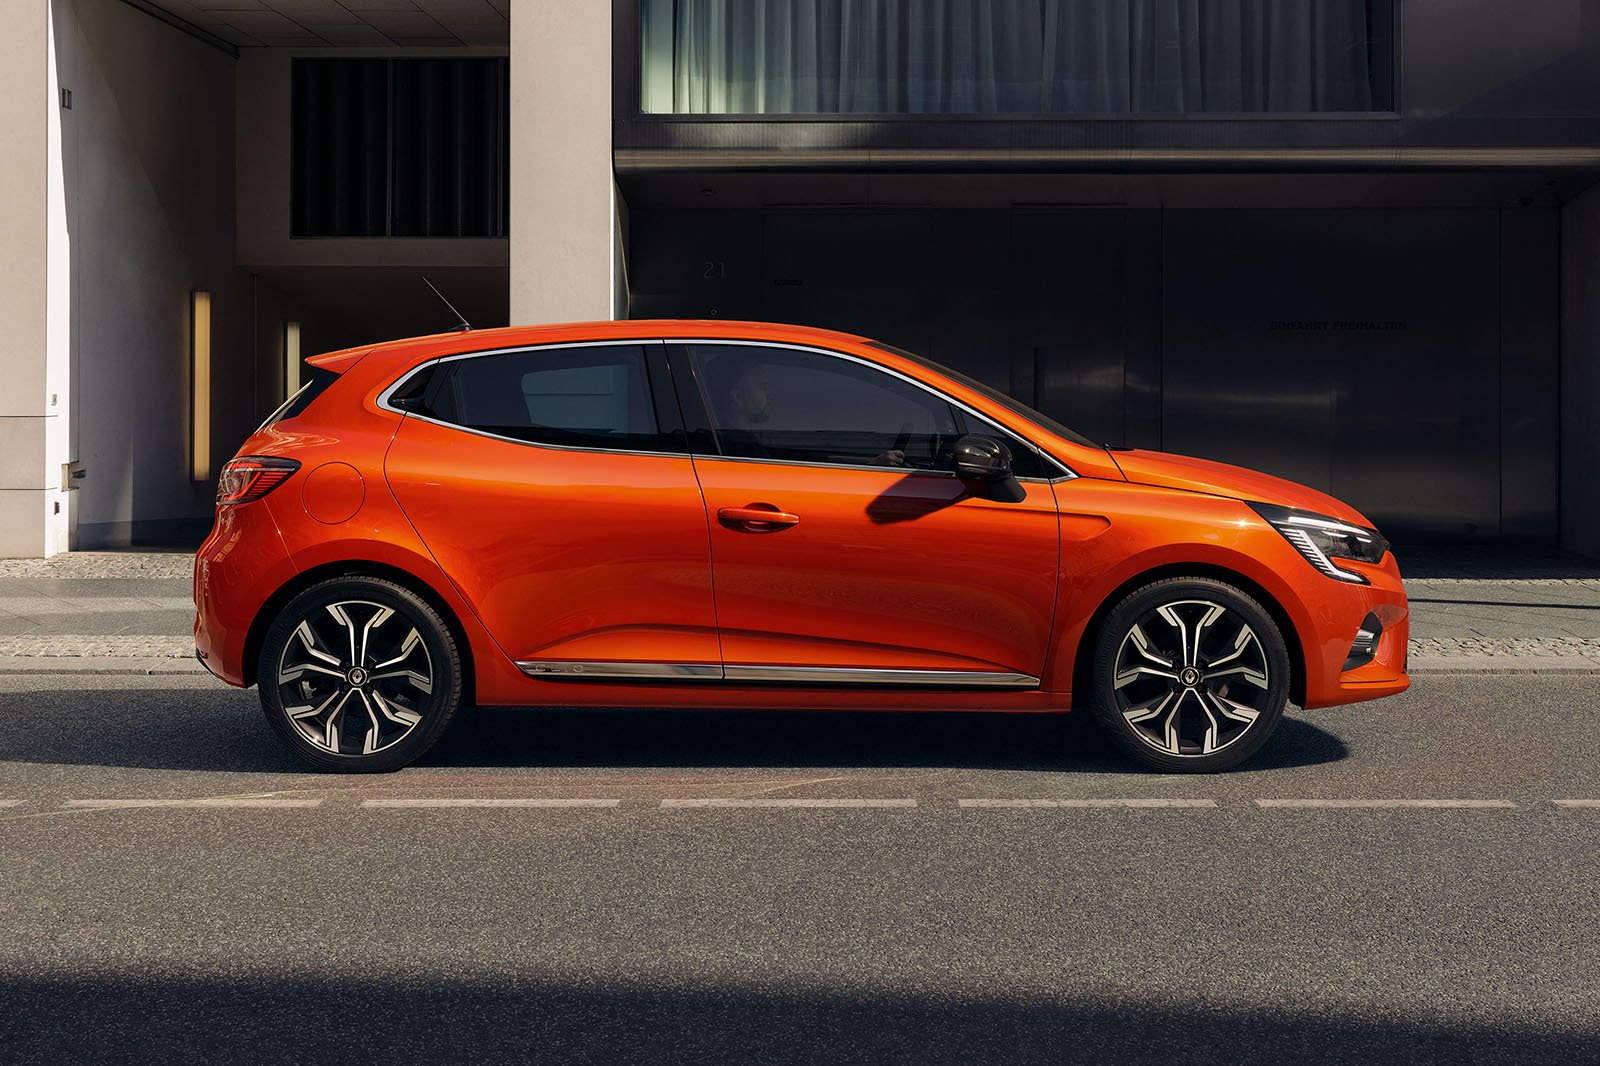 2019 Renault Clio – Price, Specs And Release Date